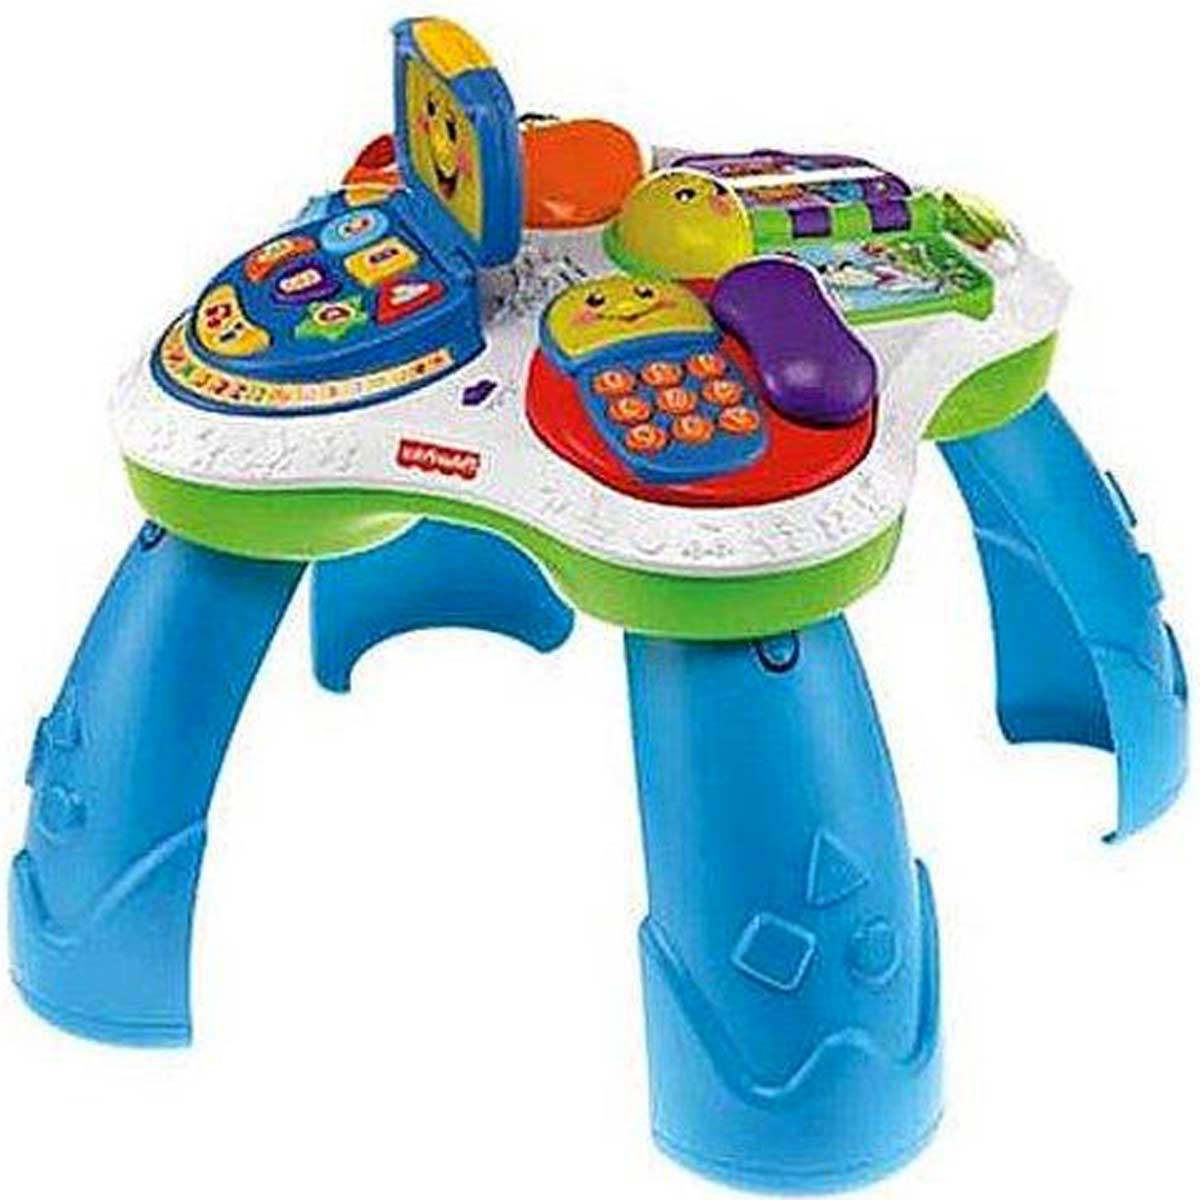 Best ideas about Baby Learning Table . Save or Pin Register for Mom and Baby and enter to WIN Now.